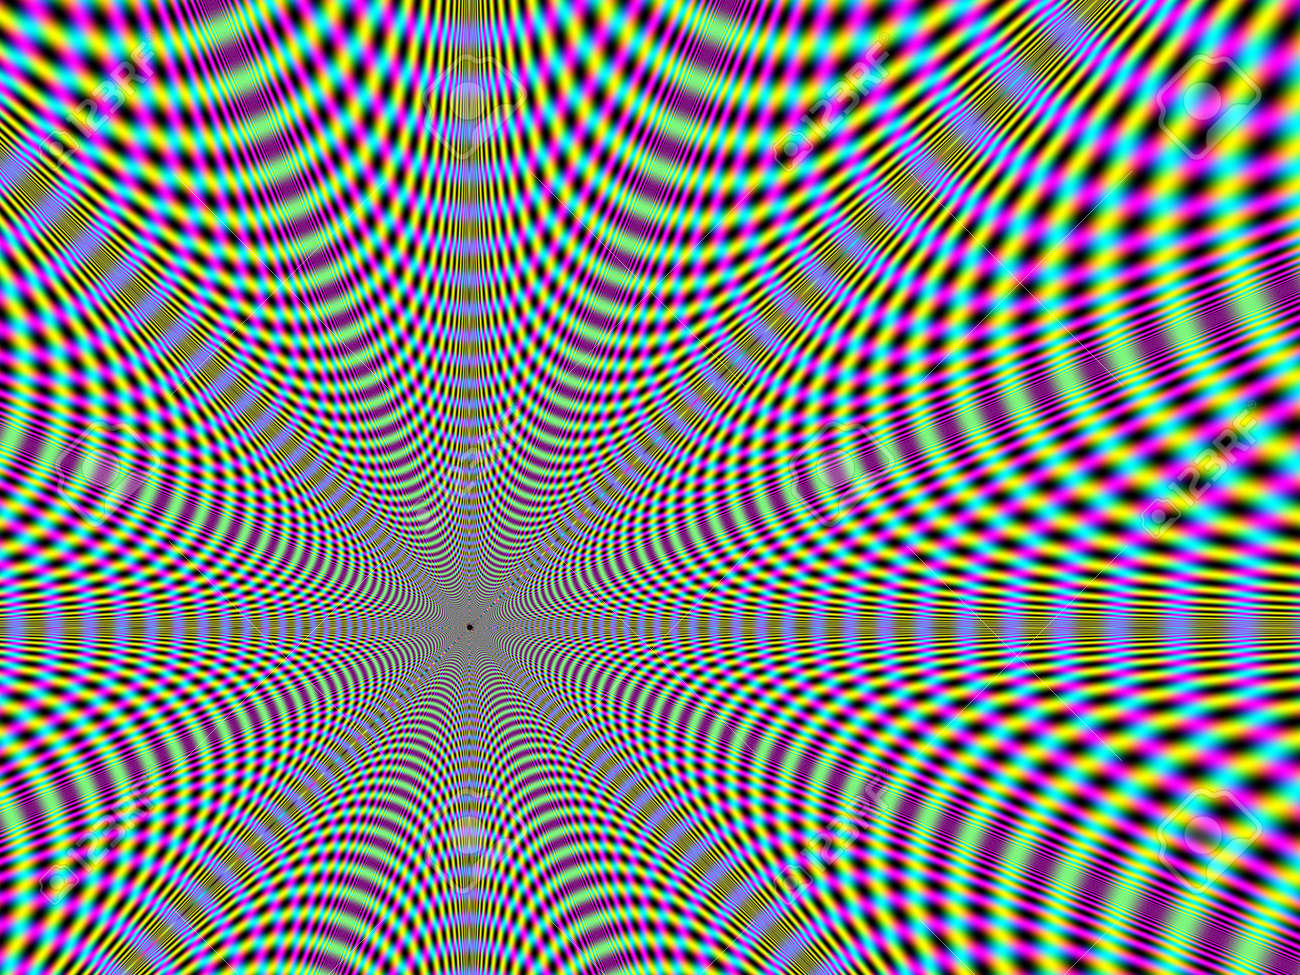 retro-style psychedelic background that seems to suck the viewer in Stock Photo - 931906